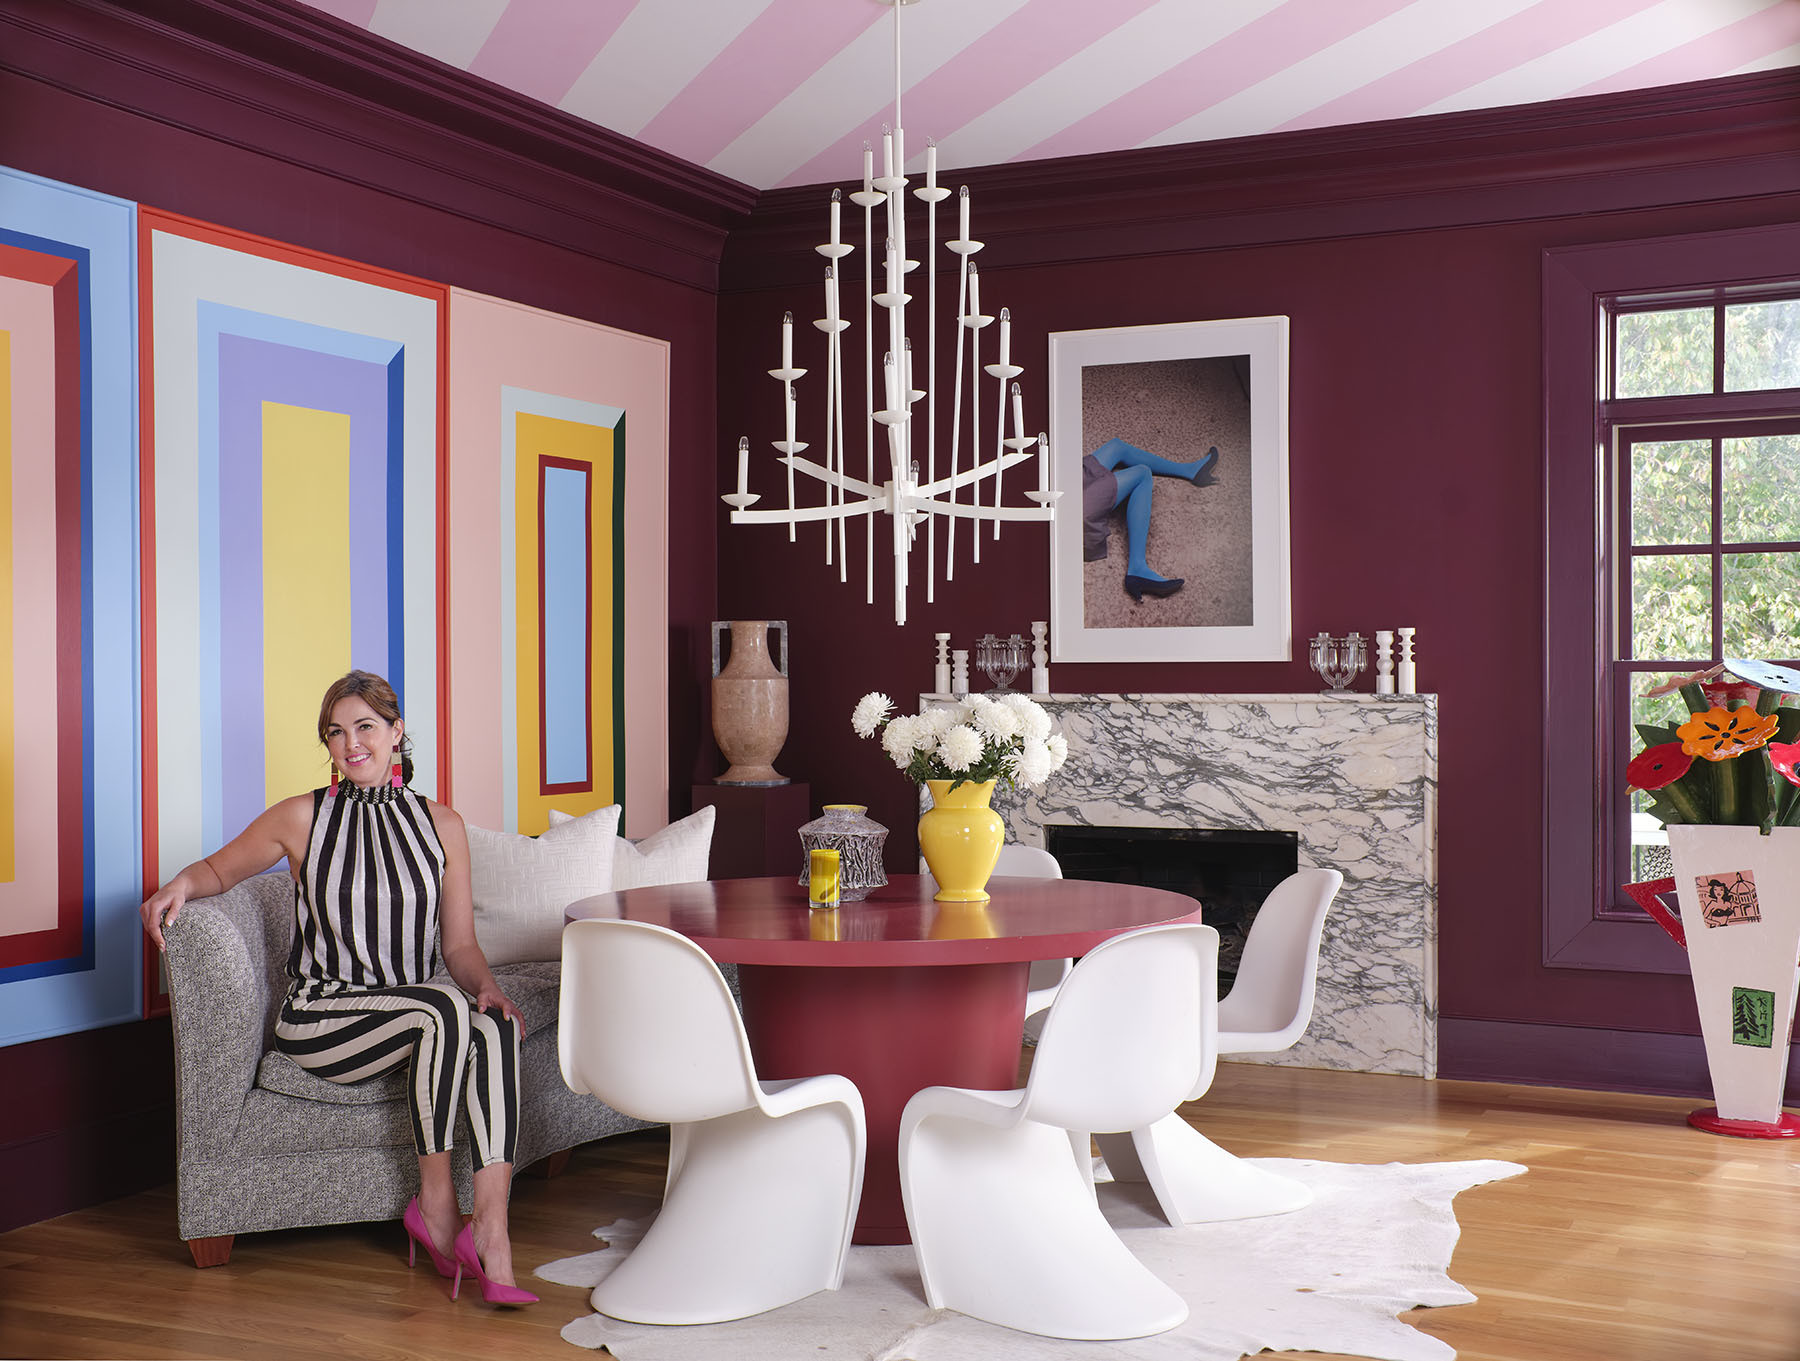 The potential for creative exploration is limitless in Blehm's dining room where she mixes color, pattern, shape, and texture with effortless ease. Crate & Barrel Dining Table | Panton Chairs | Vintage Love Seat | Angela Chrusciaki Blehm Artwork | Gillian Bryce Floor Vase | Vintage Floor Hide | Vintage Chandelier